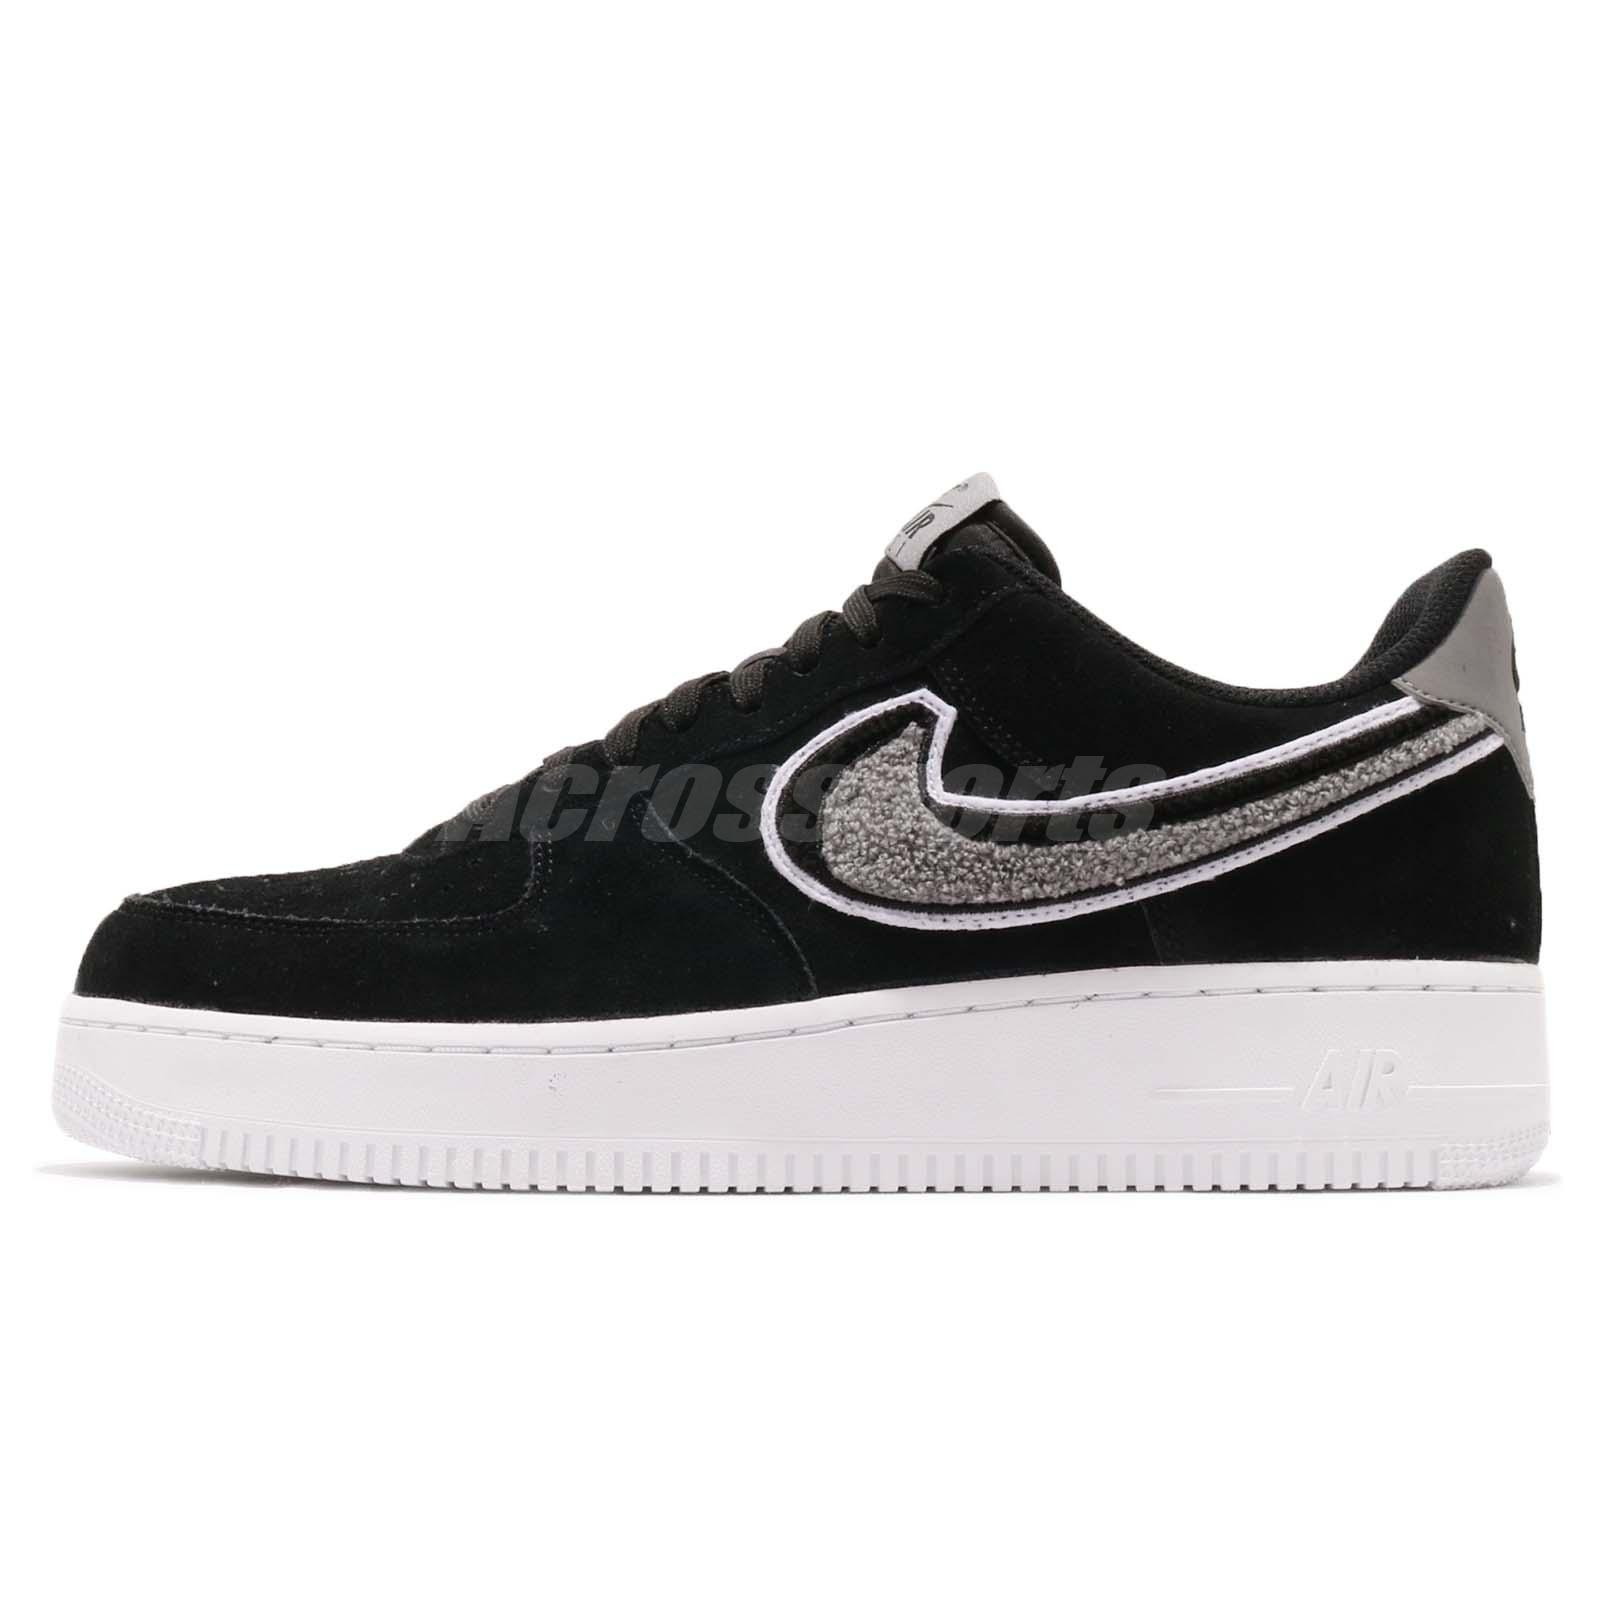 info for 19170 573bf Details about Nike Air Force 1 07 LV8 AF1 Chenille Swoosh Black Men Casual  Shoes 823511-014